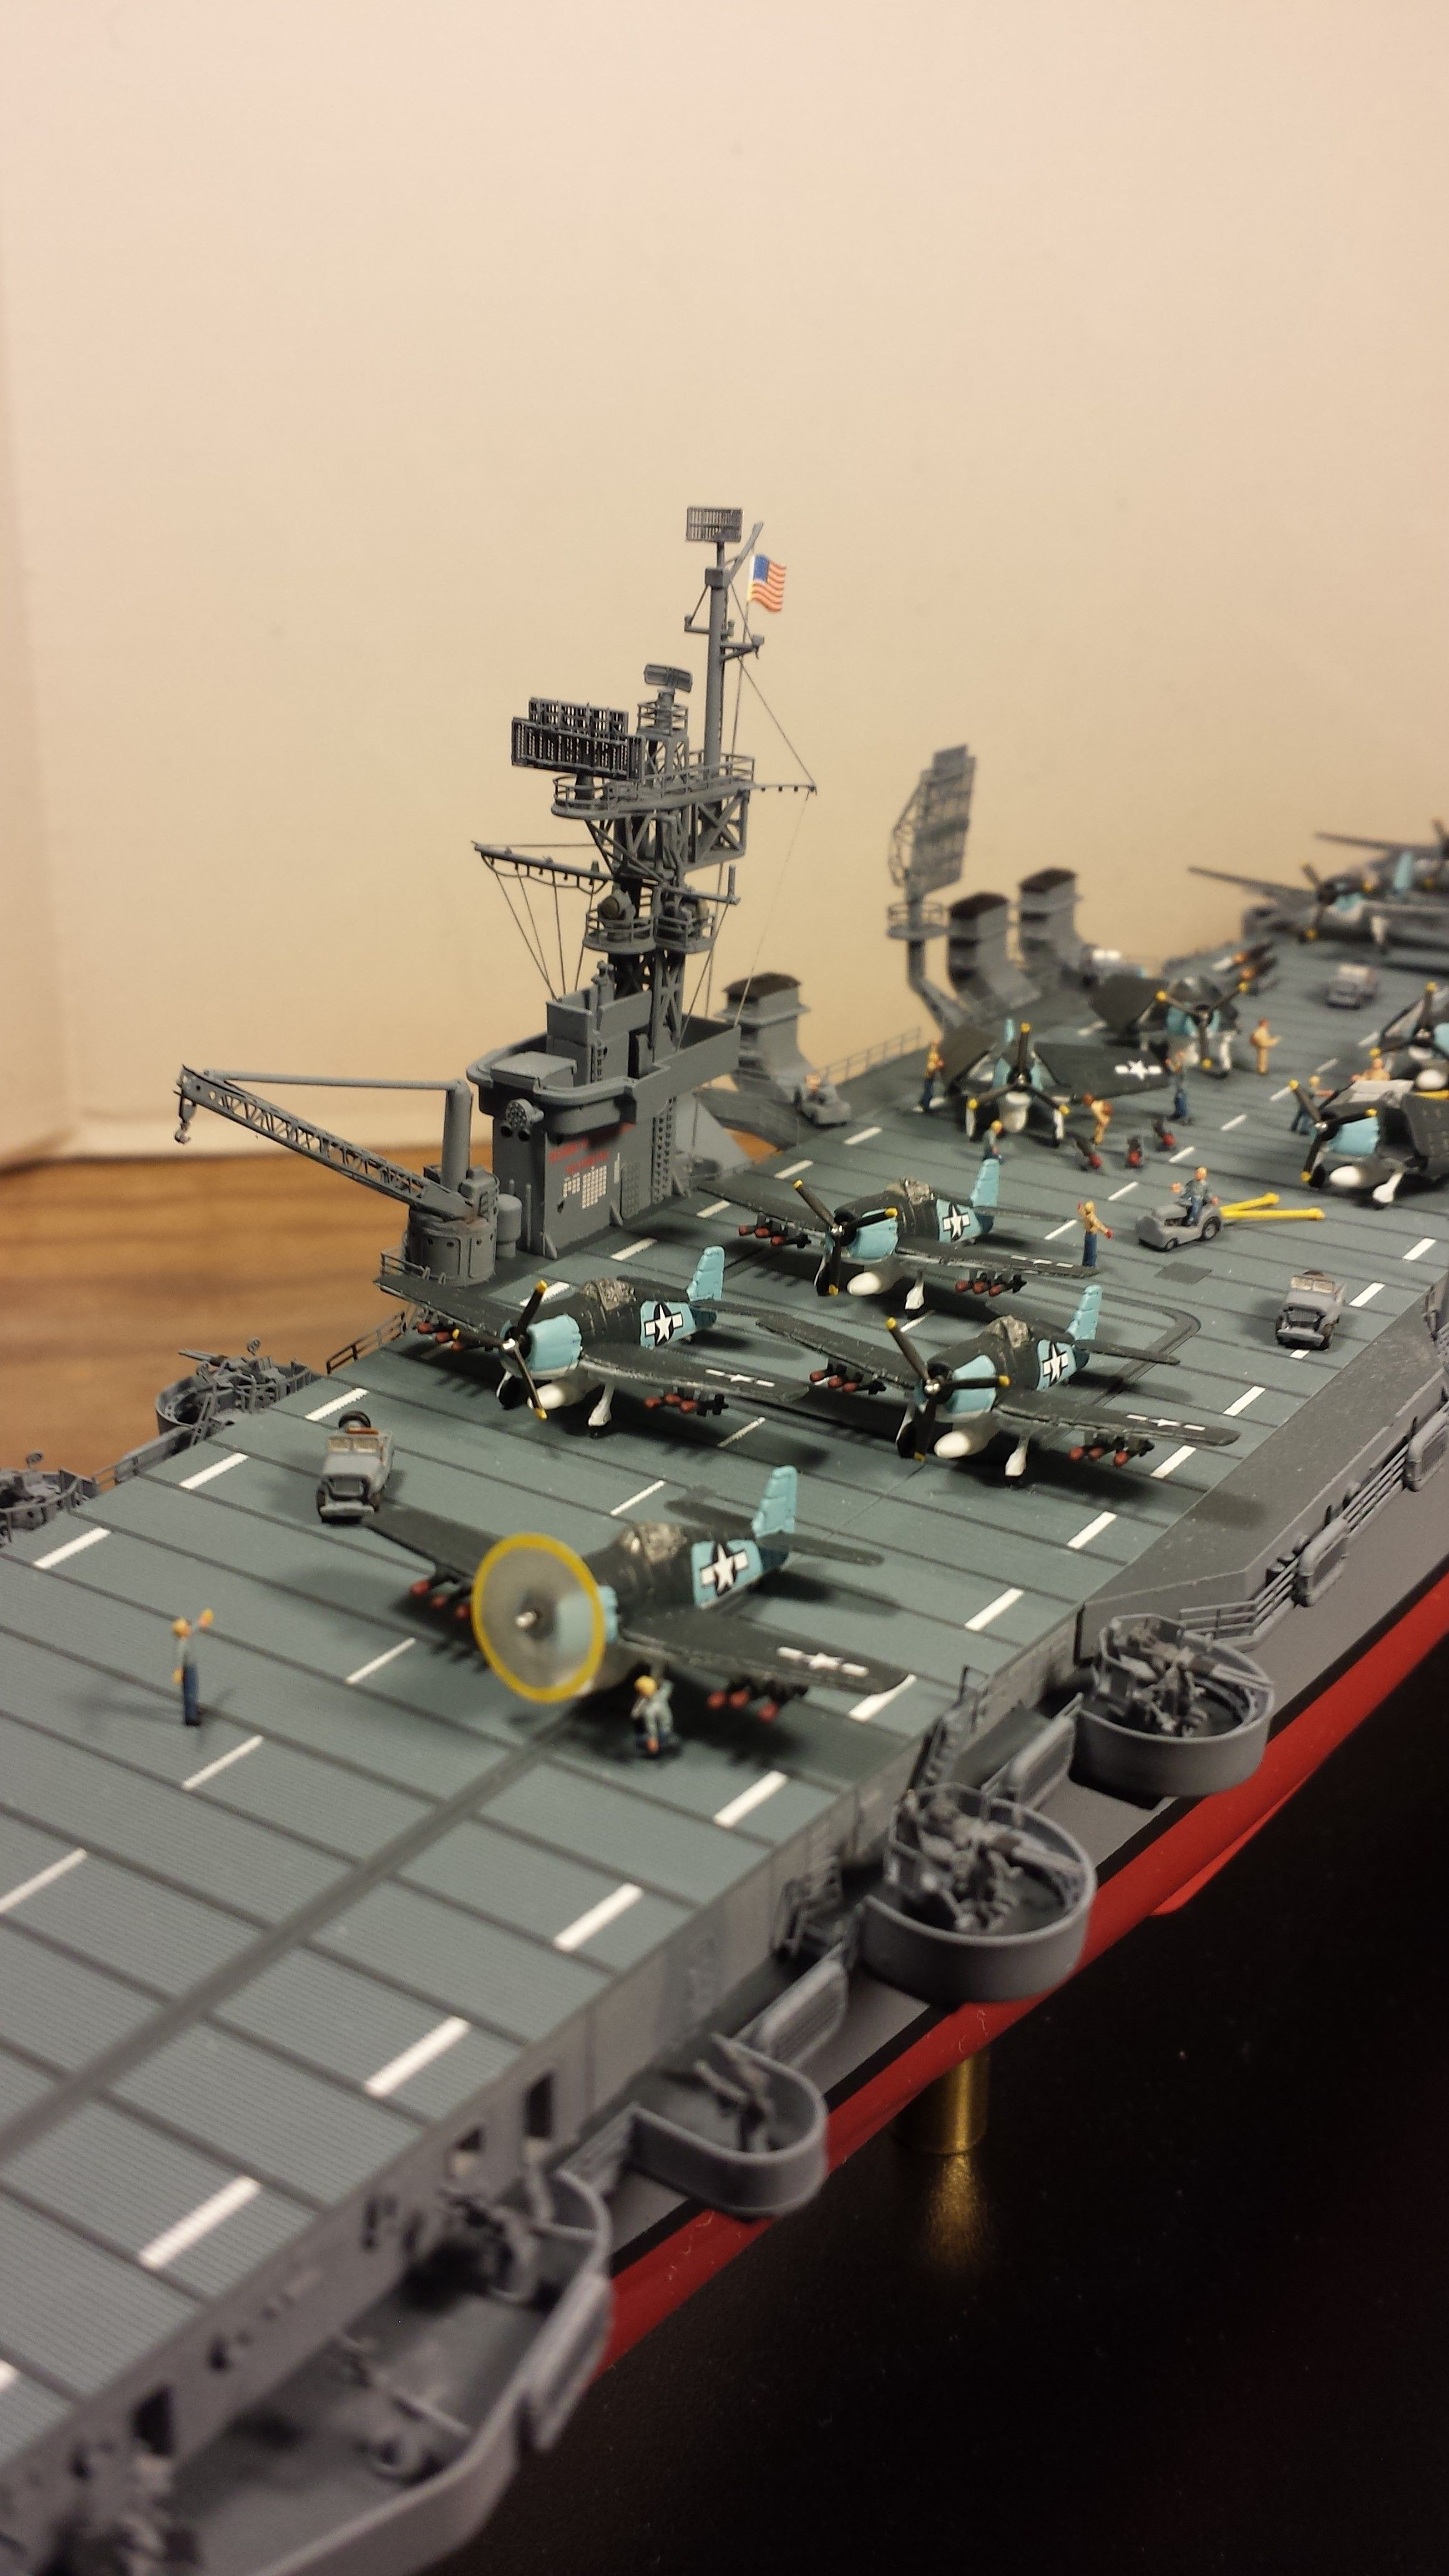 Aircraft carrier models large scale - Dragon Uss Princeton Cvl23 Scale 1 350 By Dennis Laplante Aircraft Carrierscaledragon